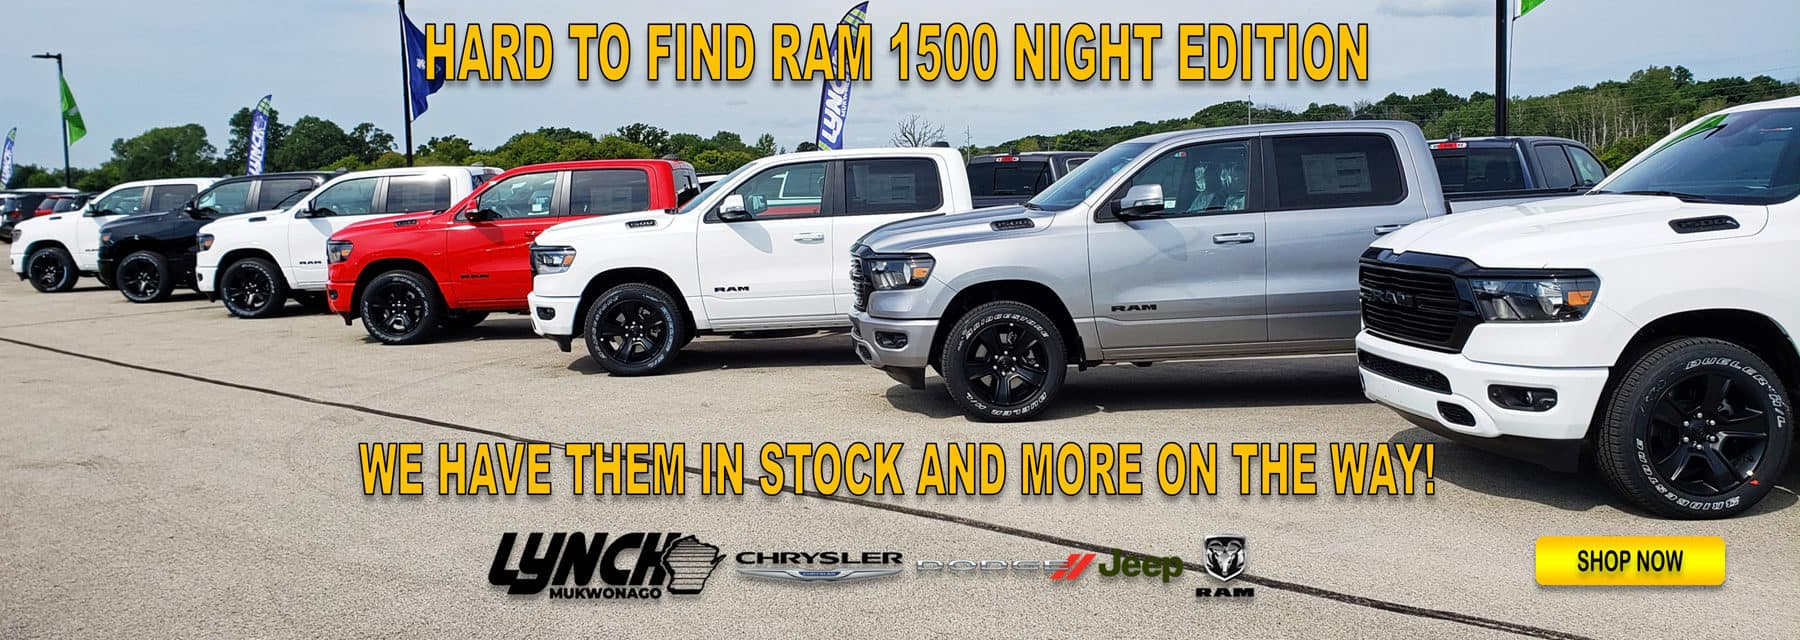 Ram Night Edition In Stock in Mukwonago WI